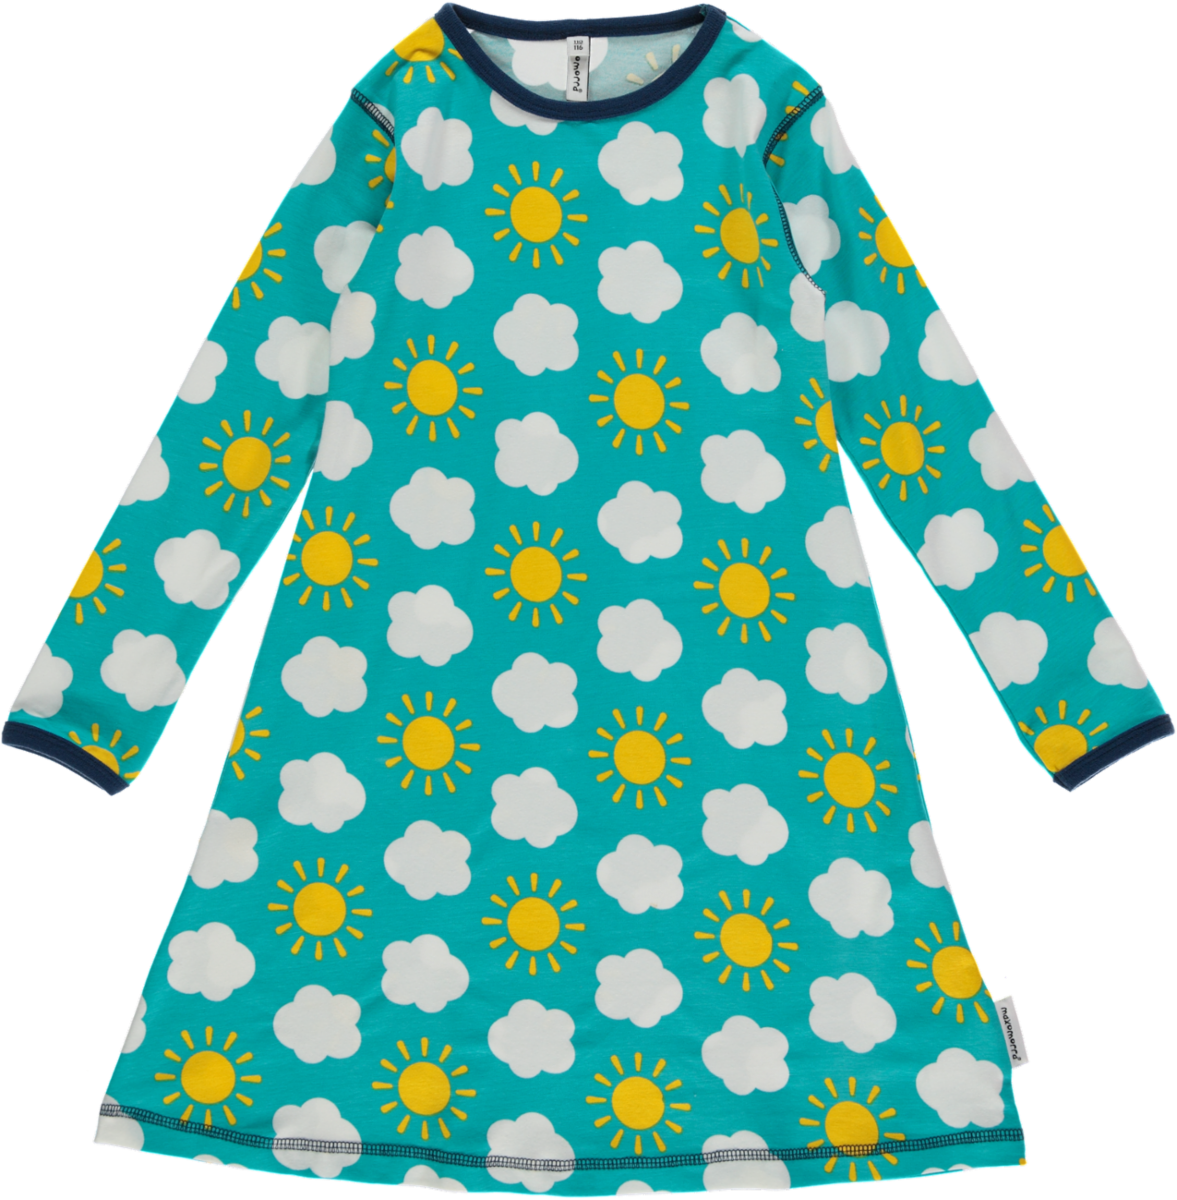 Great sunny sky print dress with long sleeves made for kids out of